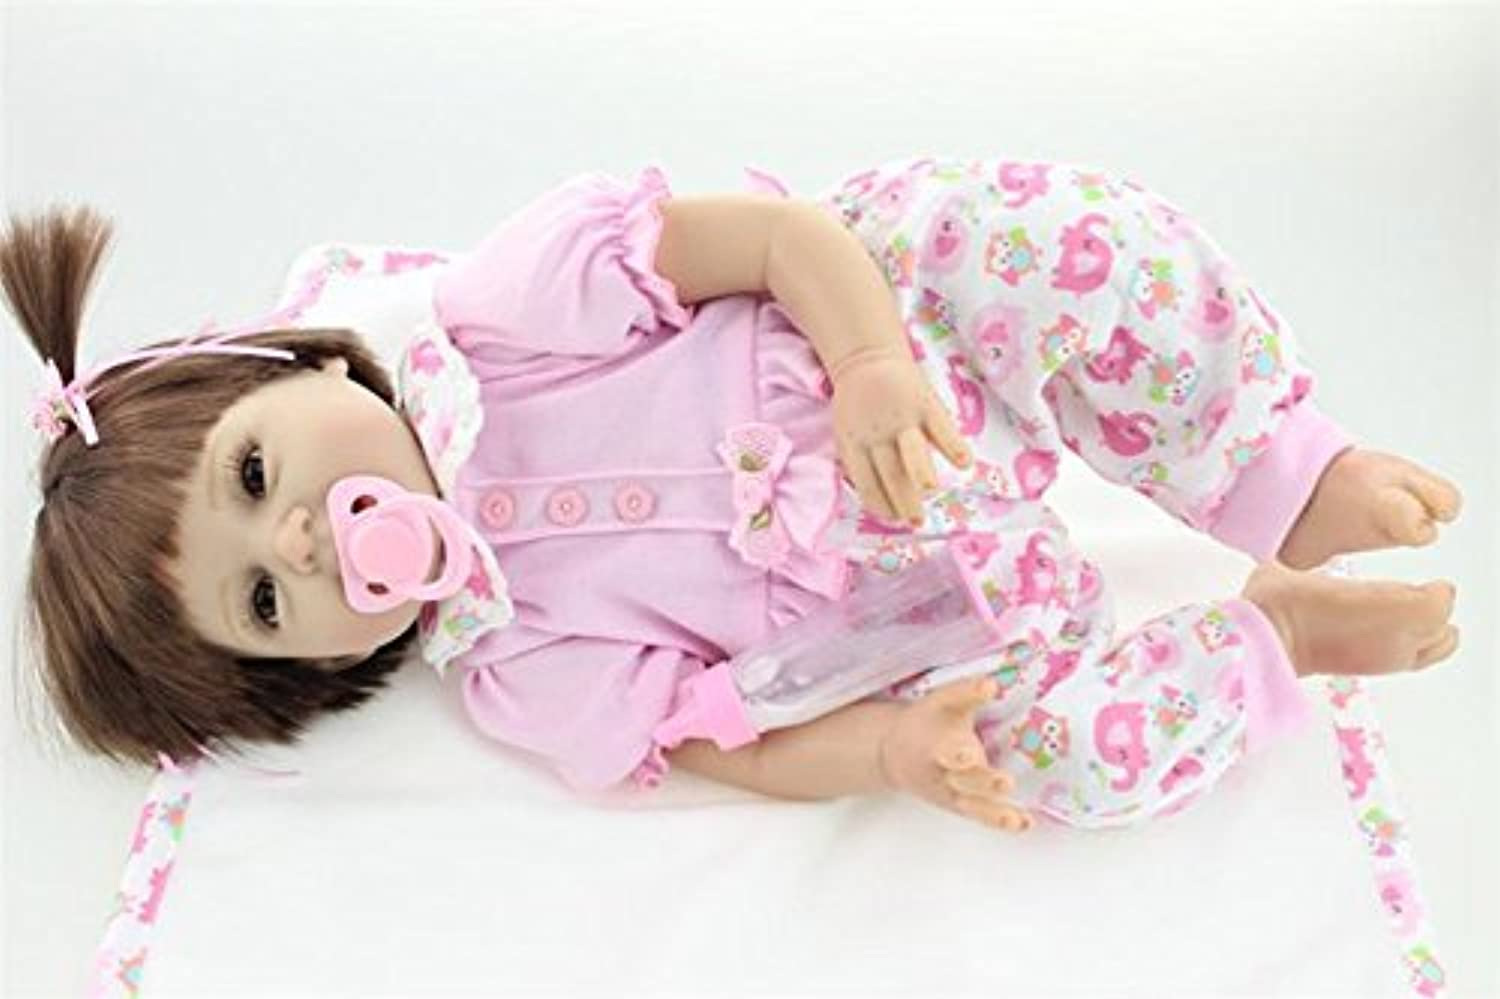 60cm Silicone Realistic Reborn Baby Pink Pigtails Girl Alive Doll Look Real Gifts for Kids Playhouse Toys Collects